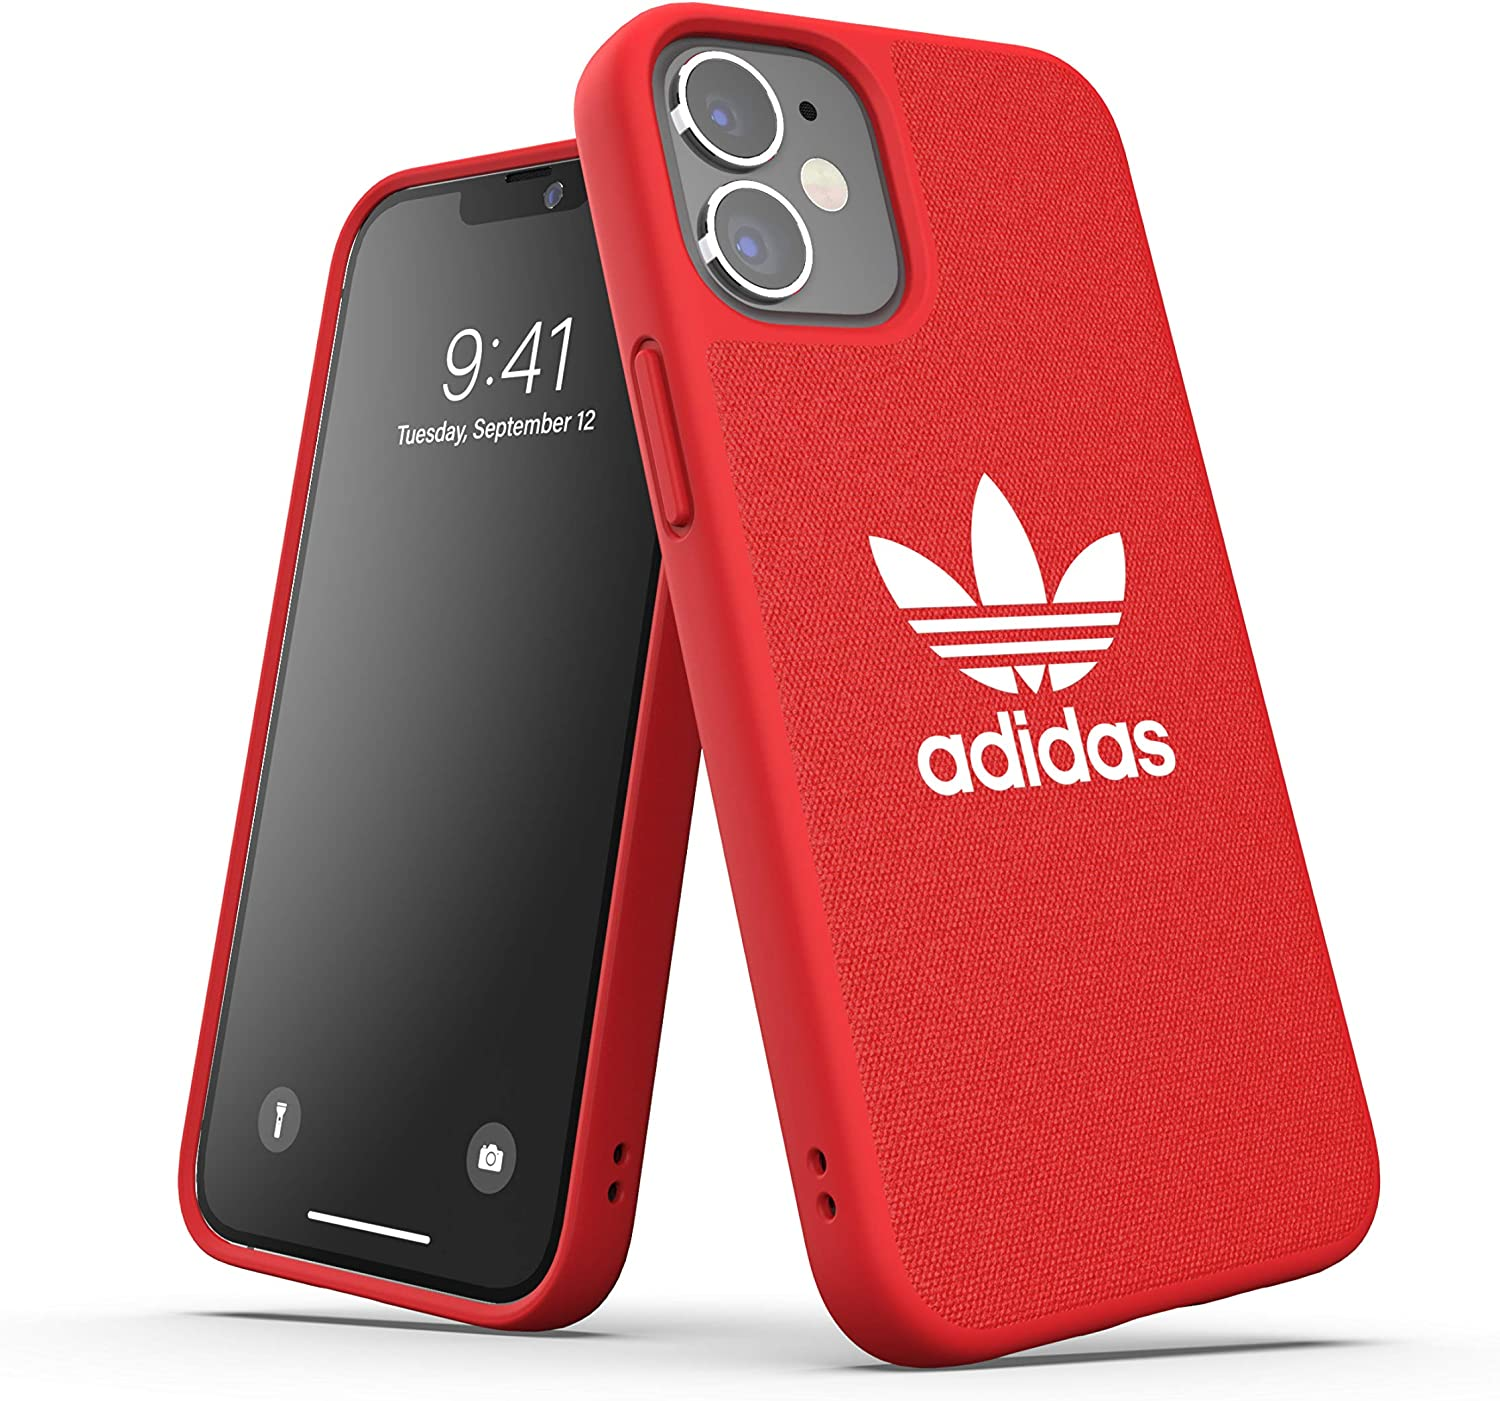 adidas Phone Case Designed for iPhone 12 Mini 5.4, Canvas Cover, Drop Tested Cases, Shockproof Raised Edges, Originals Protective Cover, Scartlet